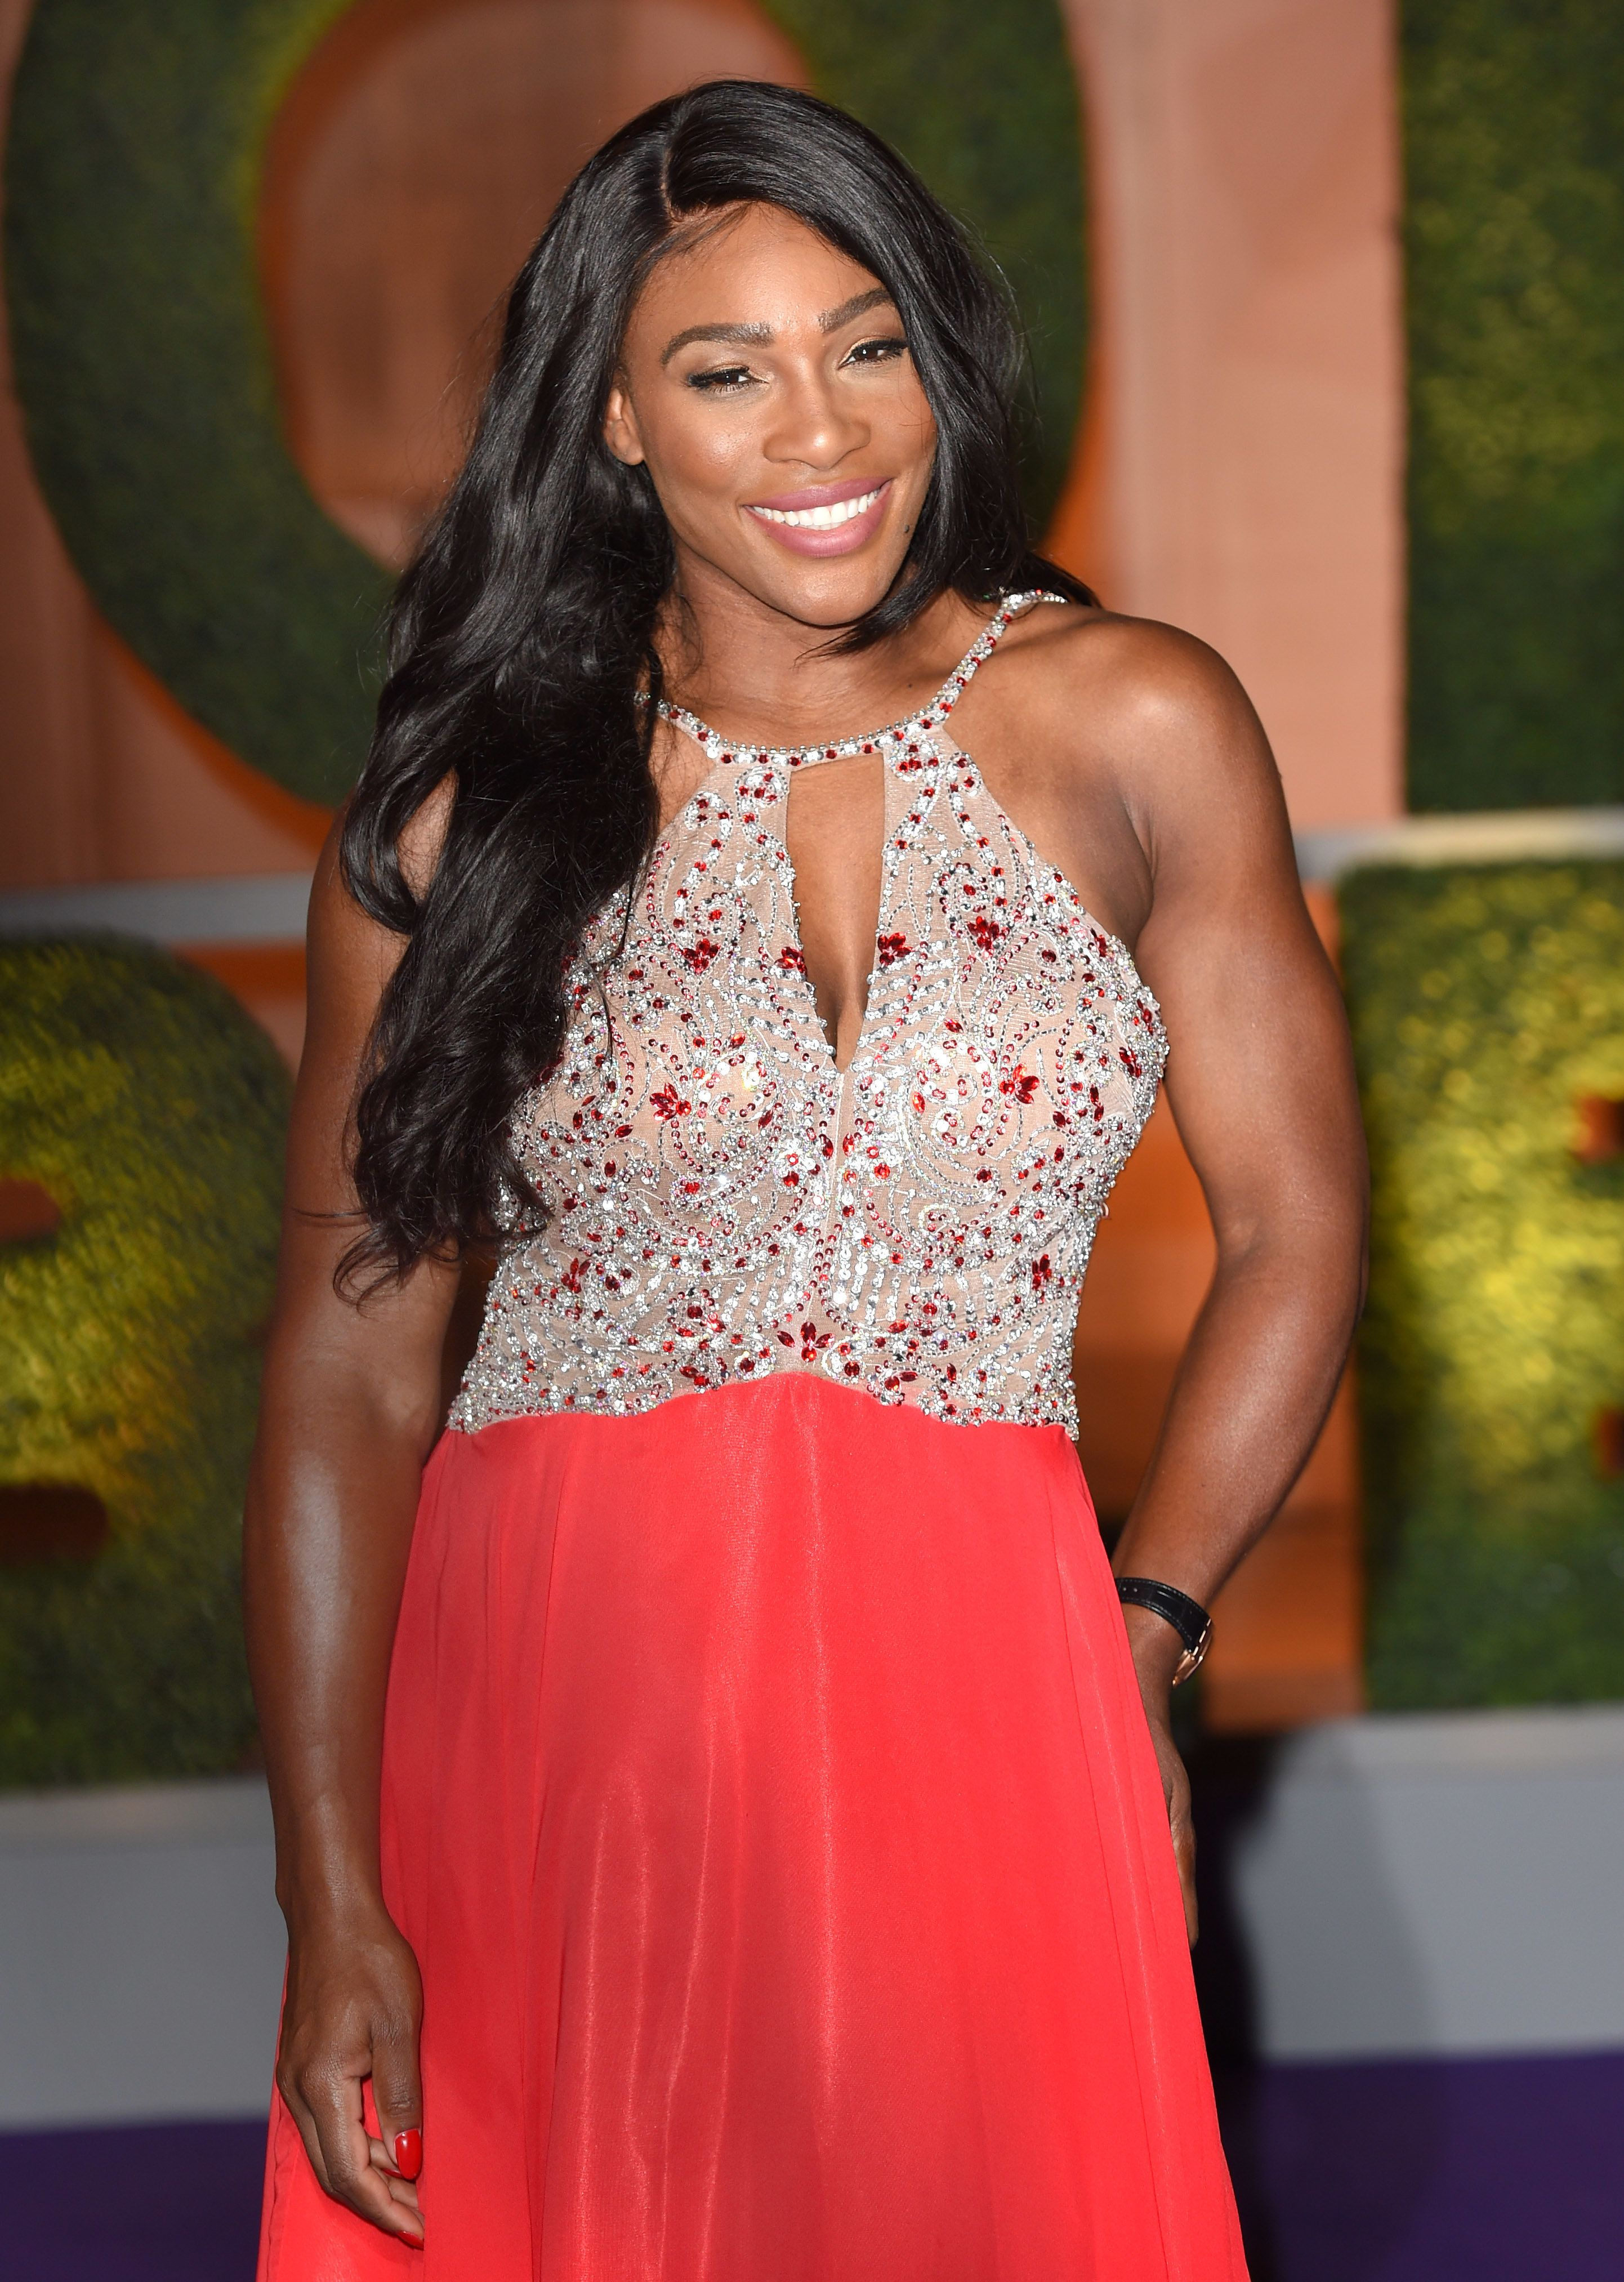 LONDON, ENGLAND - JULY 10:  Serena Williams attends the Wimbledon Winners Ball at The Guildhall on July 10, 2016 in London, England.  (Photo by Karwai Tang/WireImage)